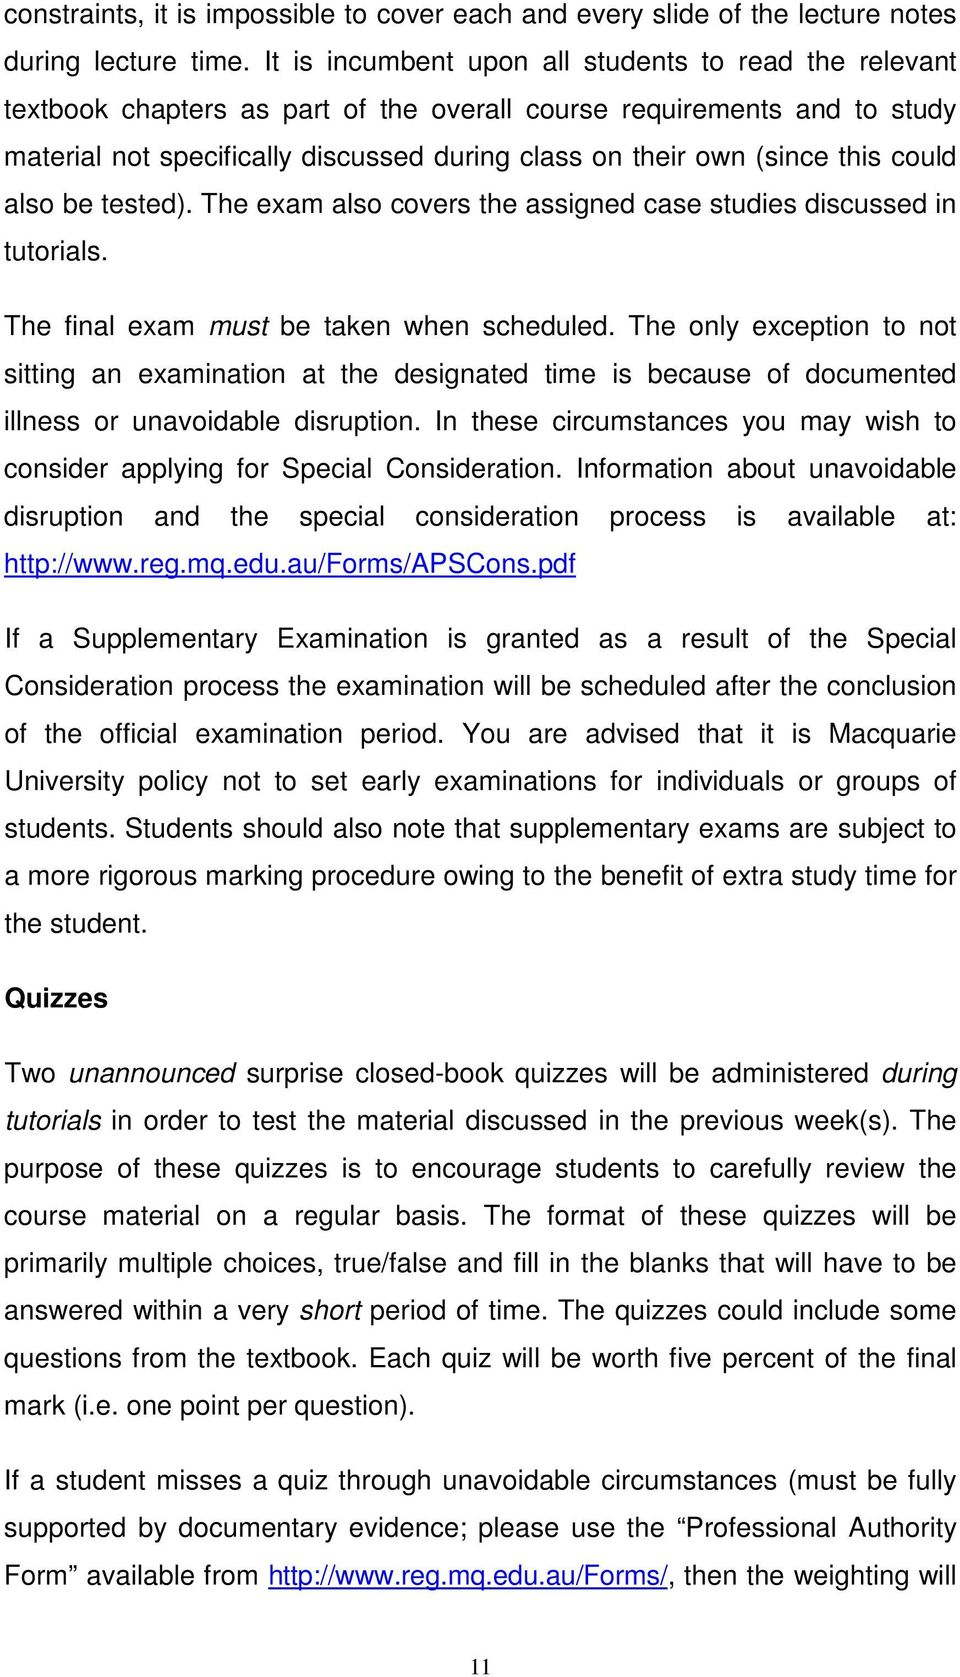 this could also be tested). The exam also covers the assigned case studies discussed in tutorials. The final exam must be taken when scheduled.